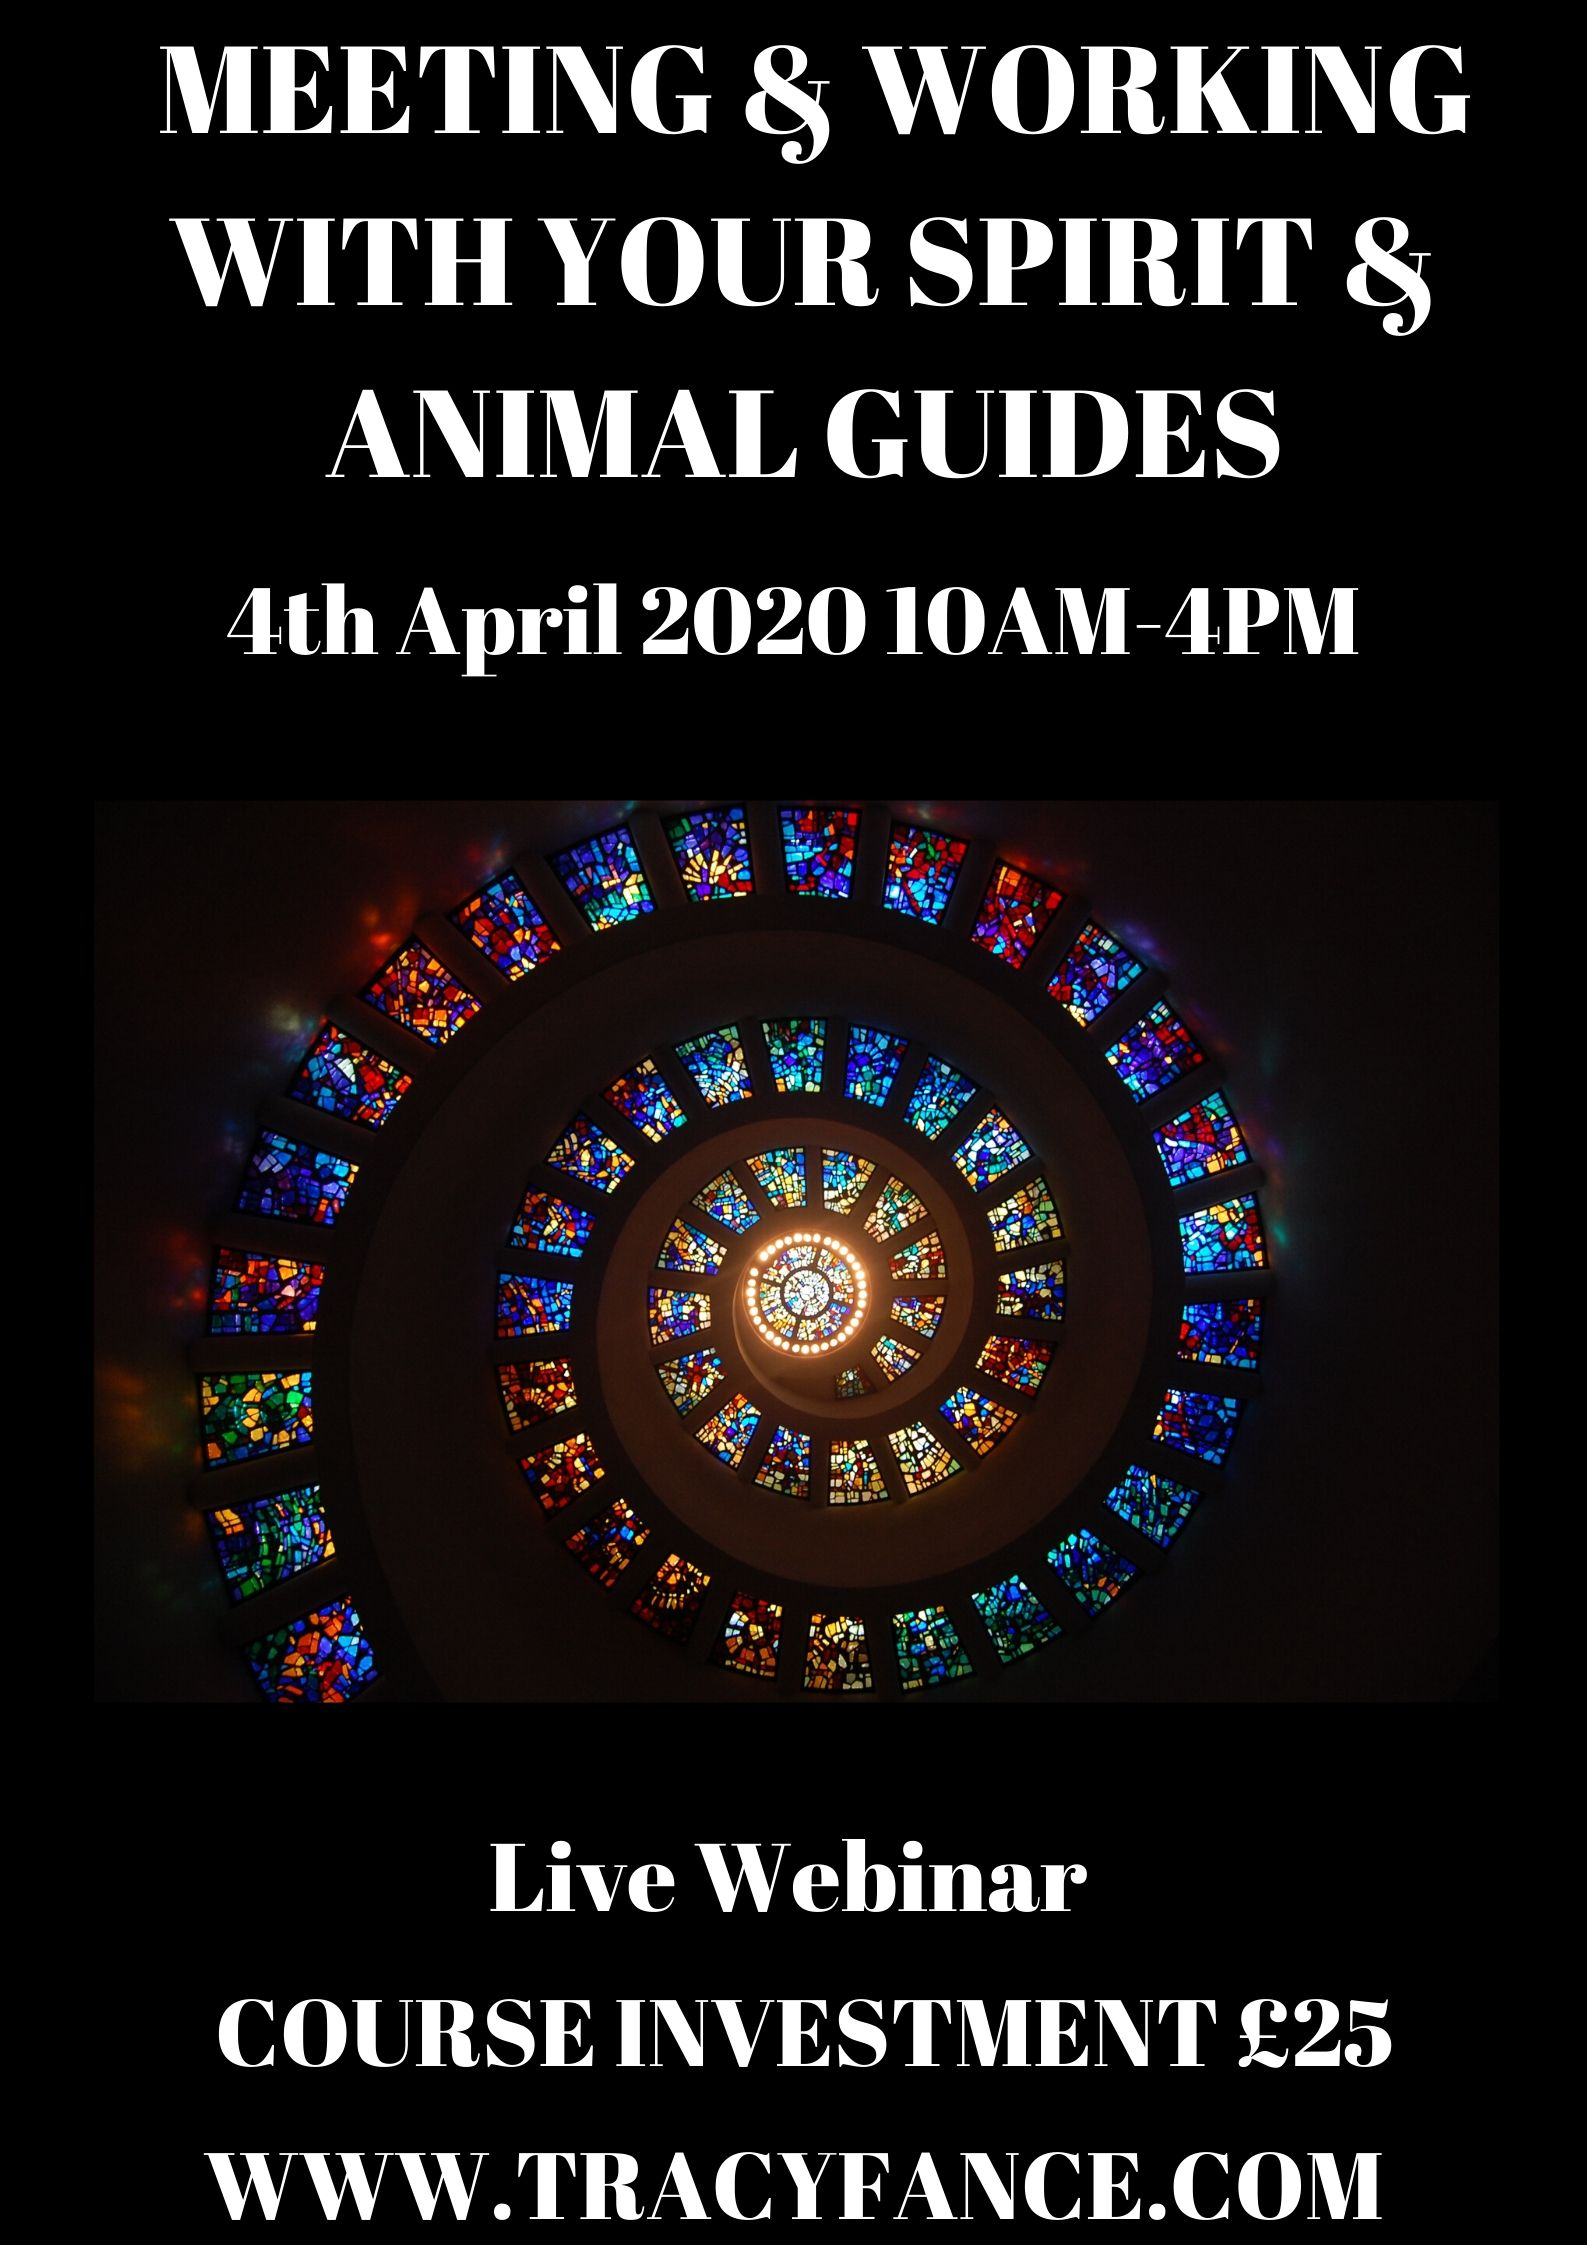 Webinar with Tracy Fance Meet Your Spirit Guides